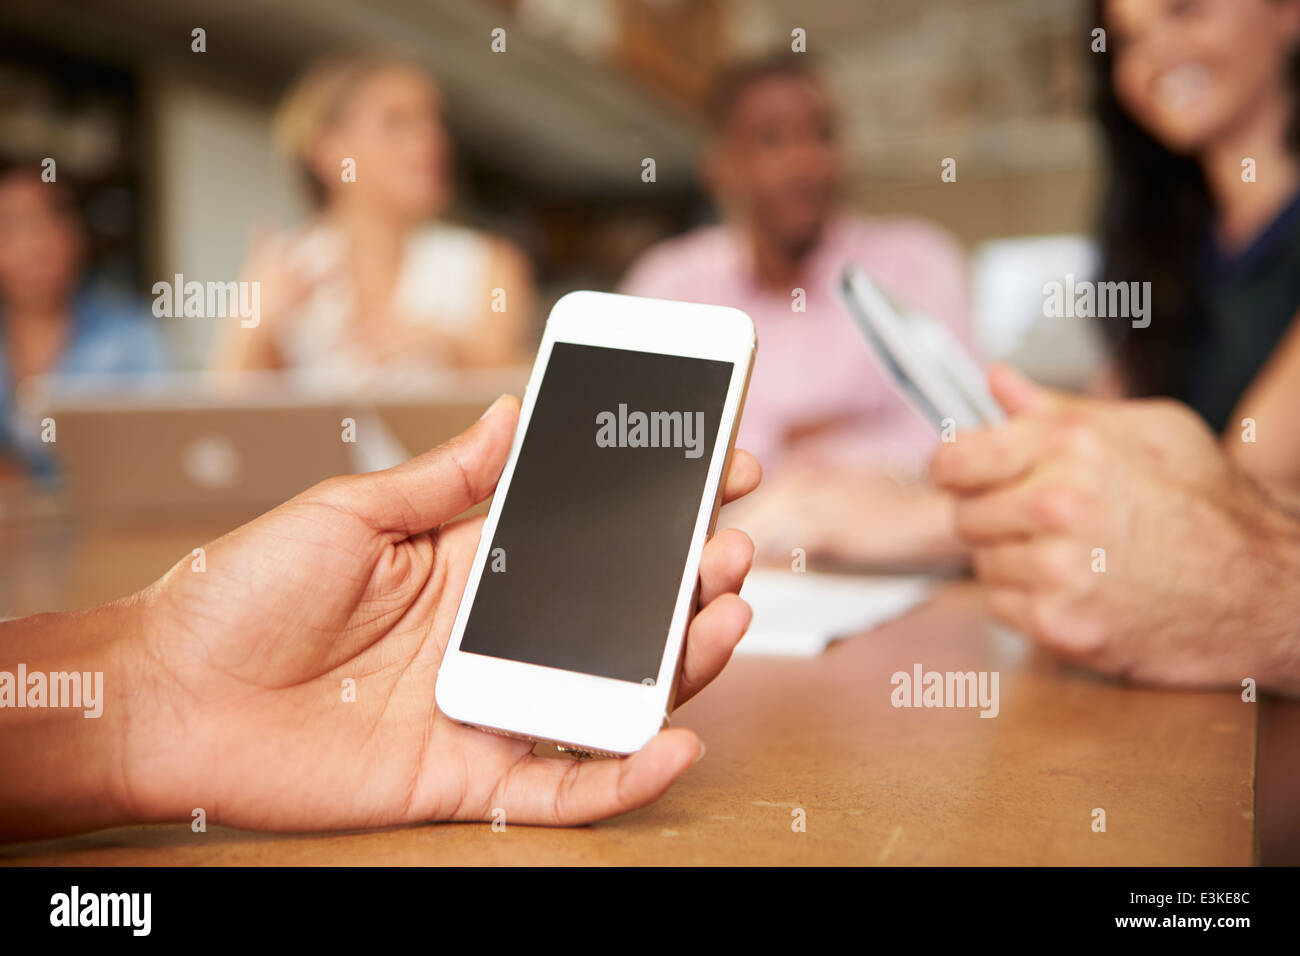 Mobile Phone Being Used By Architect In Meeting - Stock Image